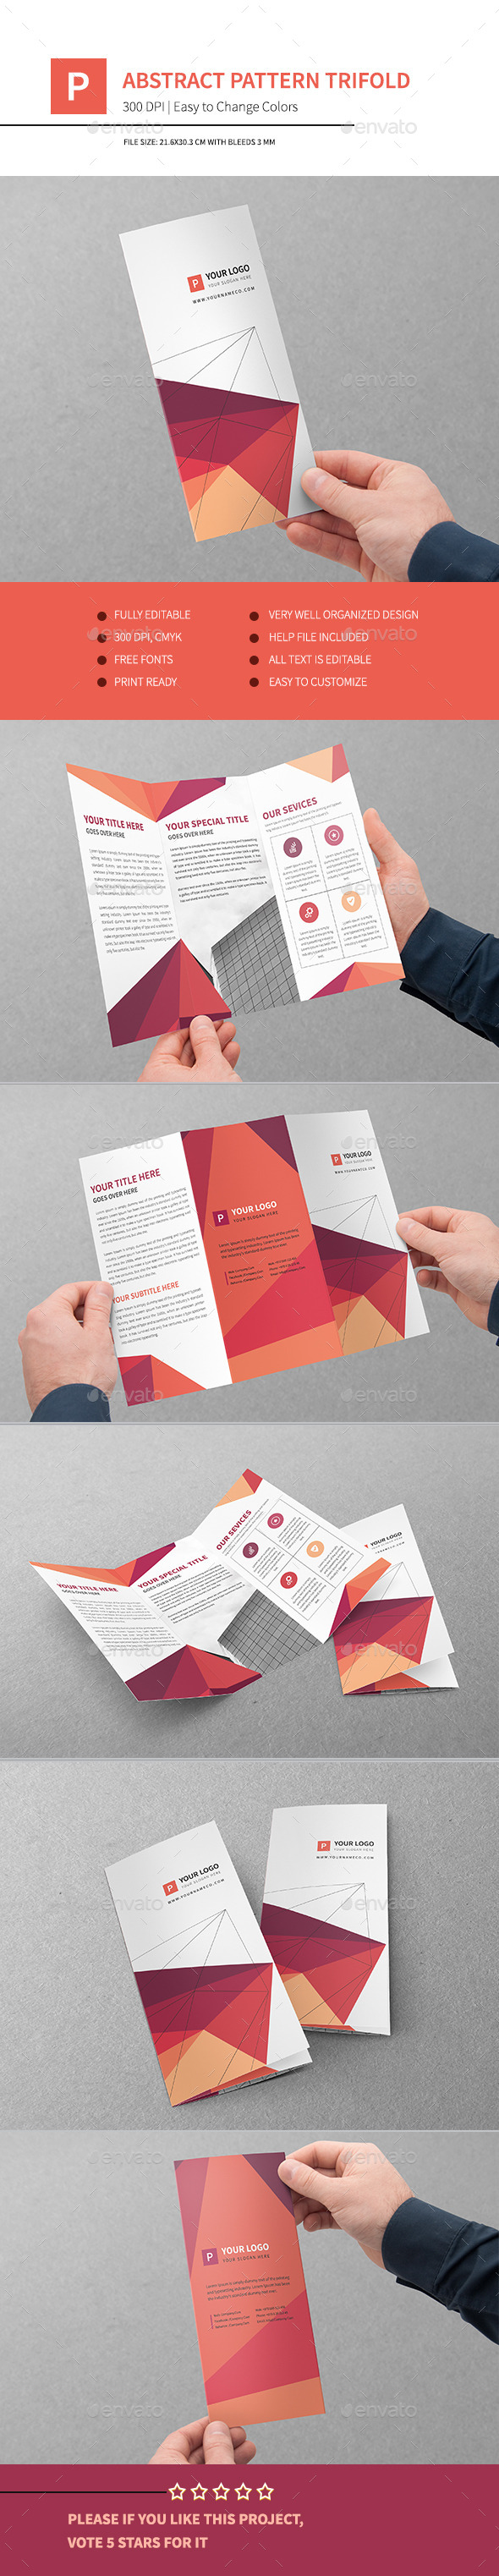 Abstract Pattern Trifold - Corporate Brochures